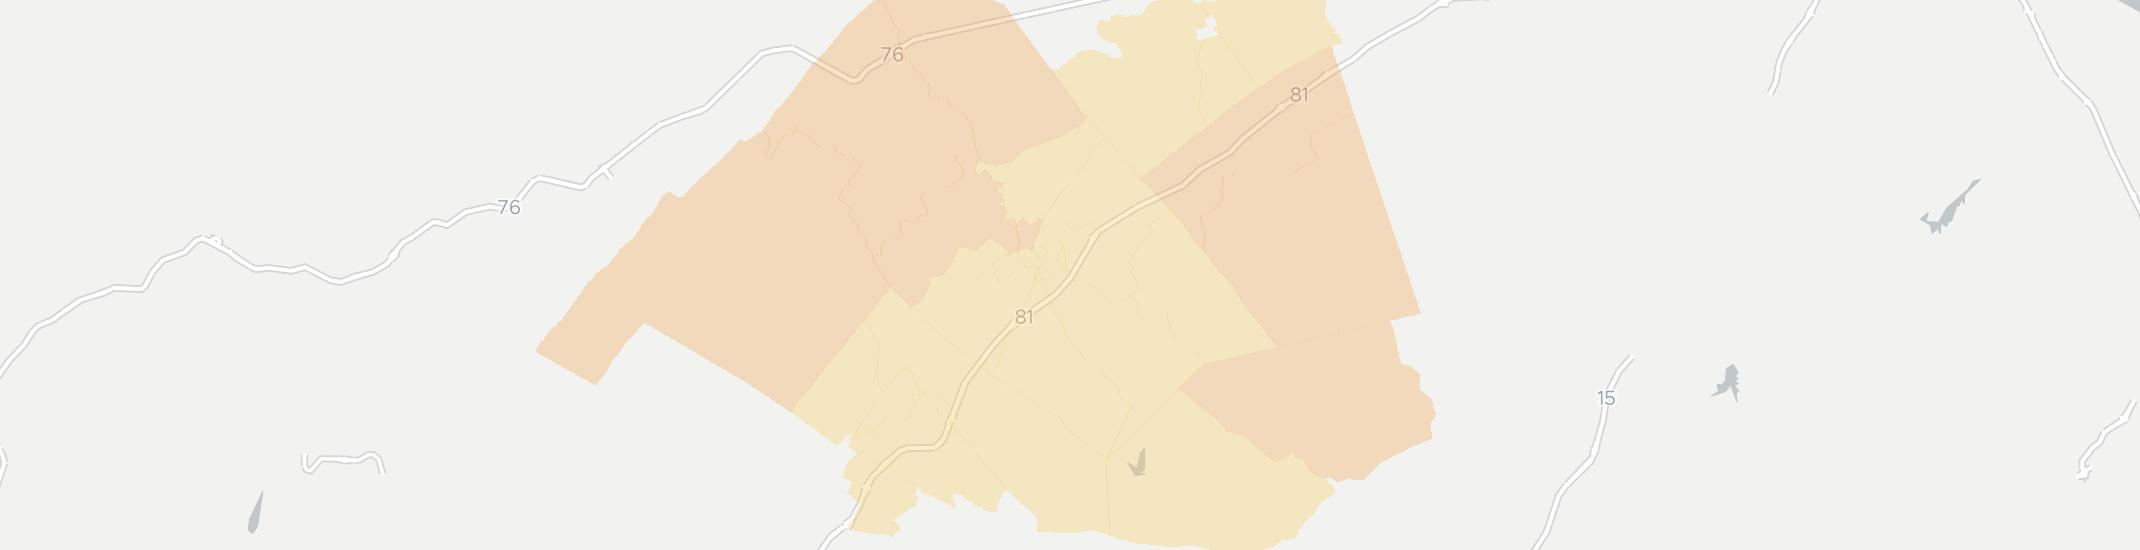 Shippensburg Internet Competition Map. Click for interactive map.